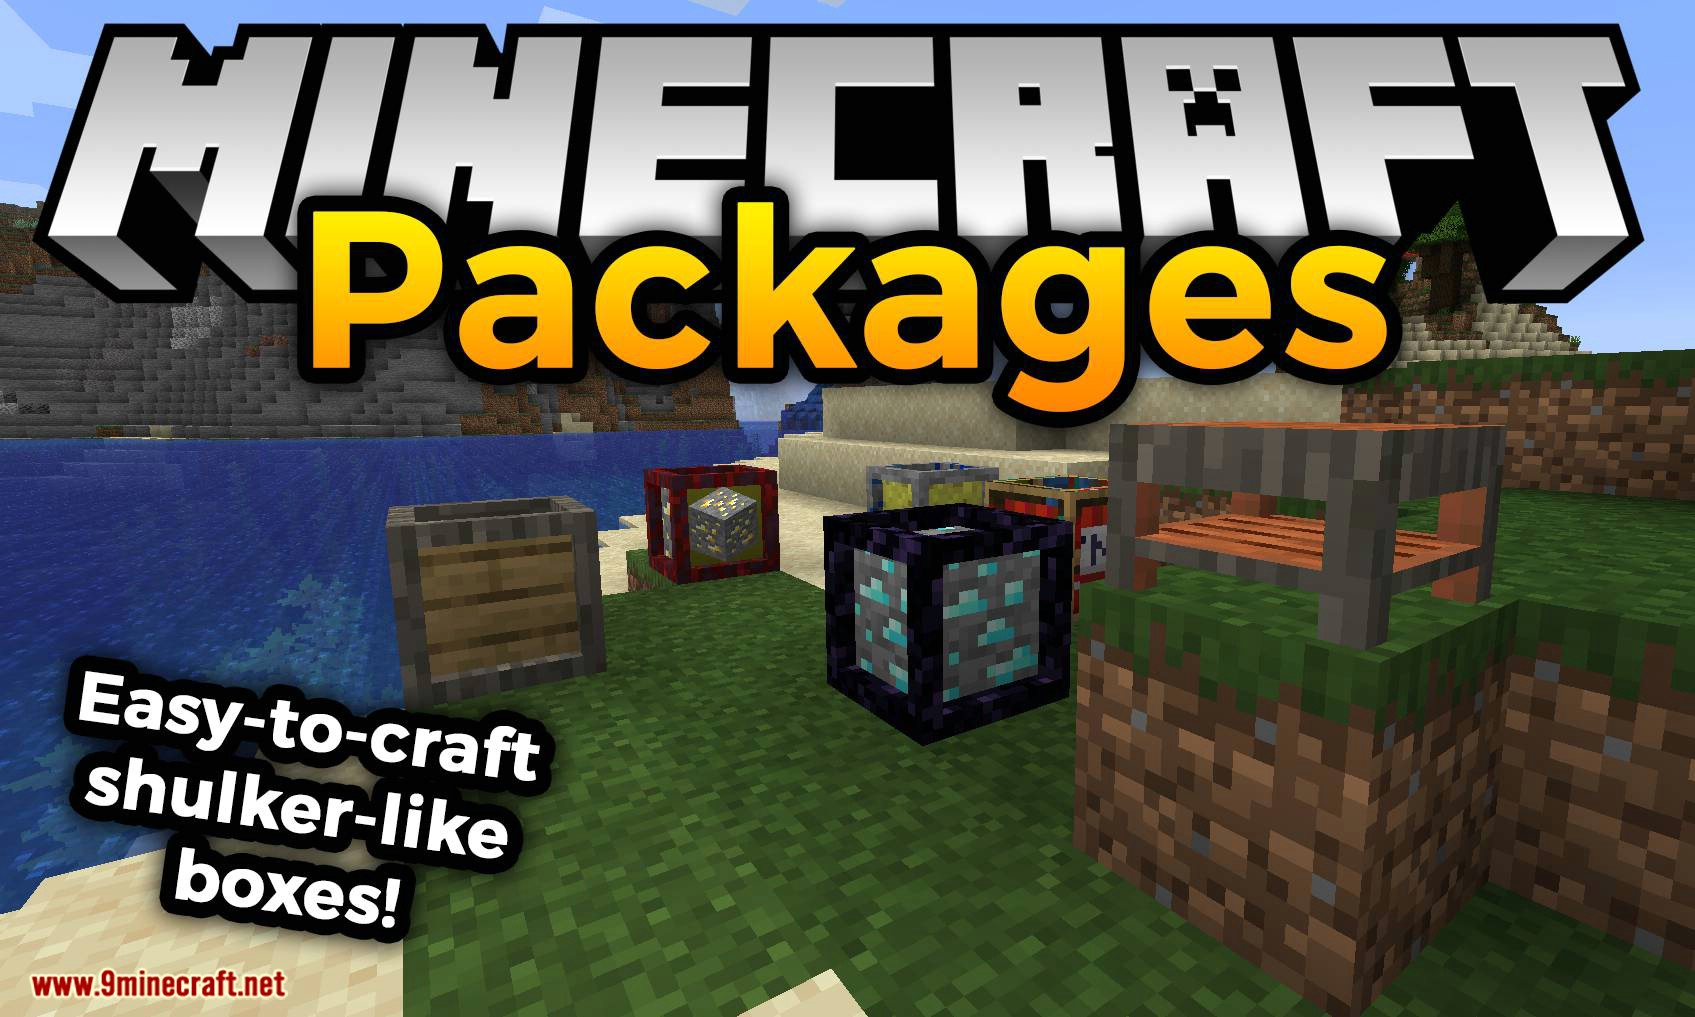 Packages mod for minecraft logo